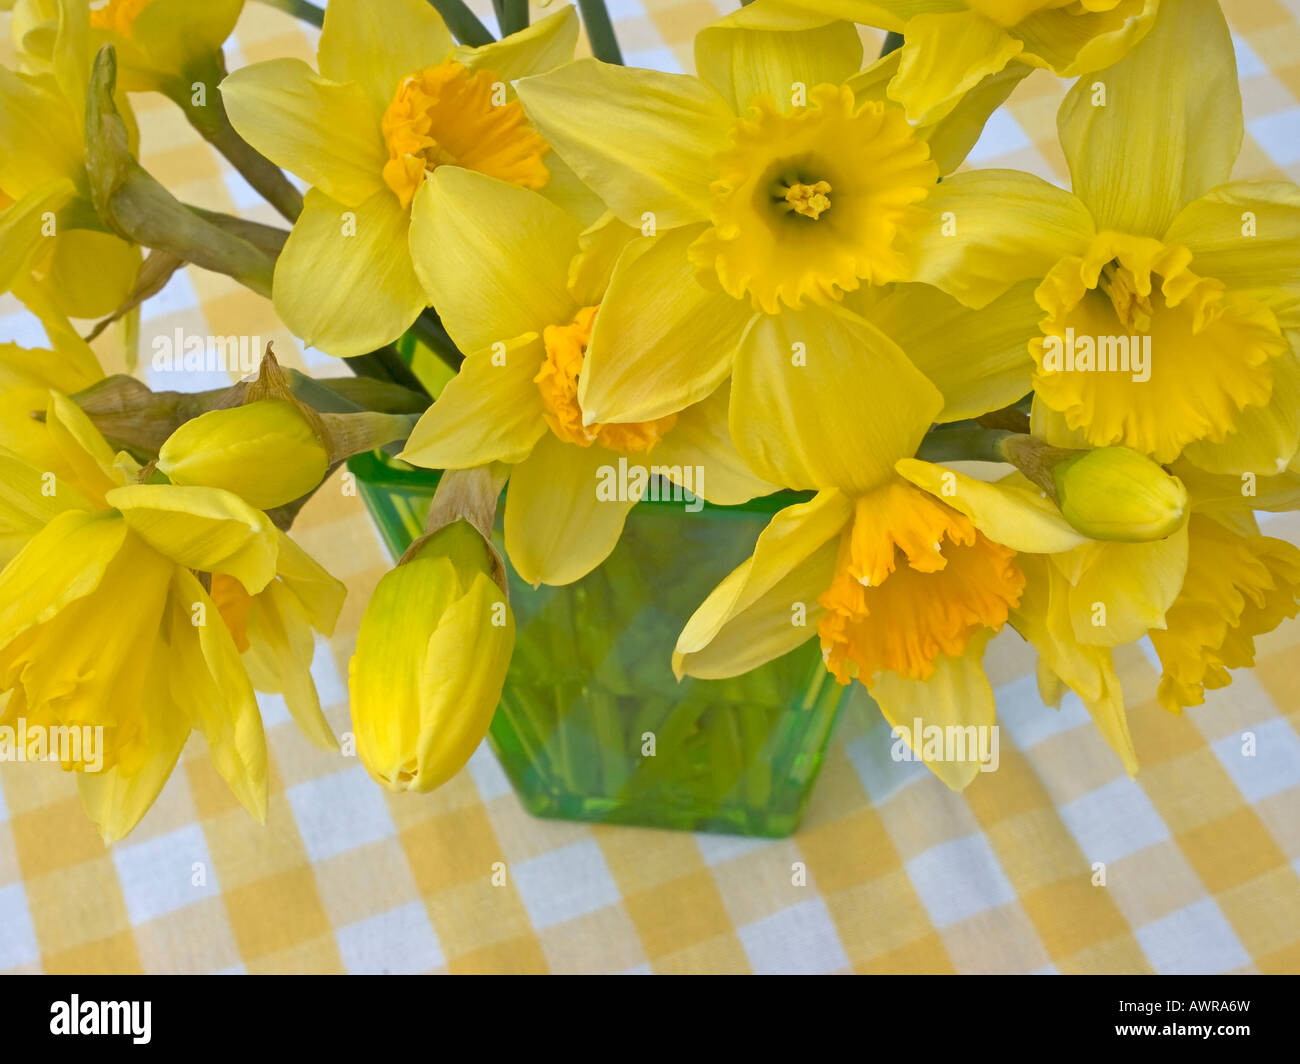 Bouquet Of Spring Flowers Daffodils Jonquils In A Vase Stock Photo